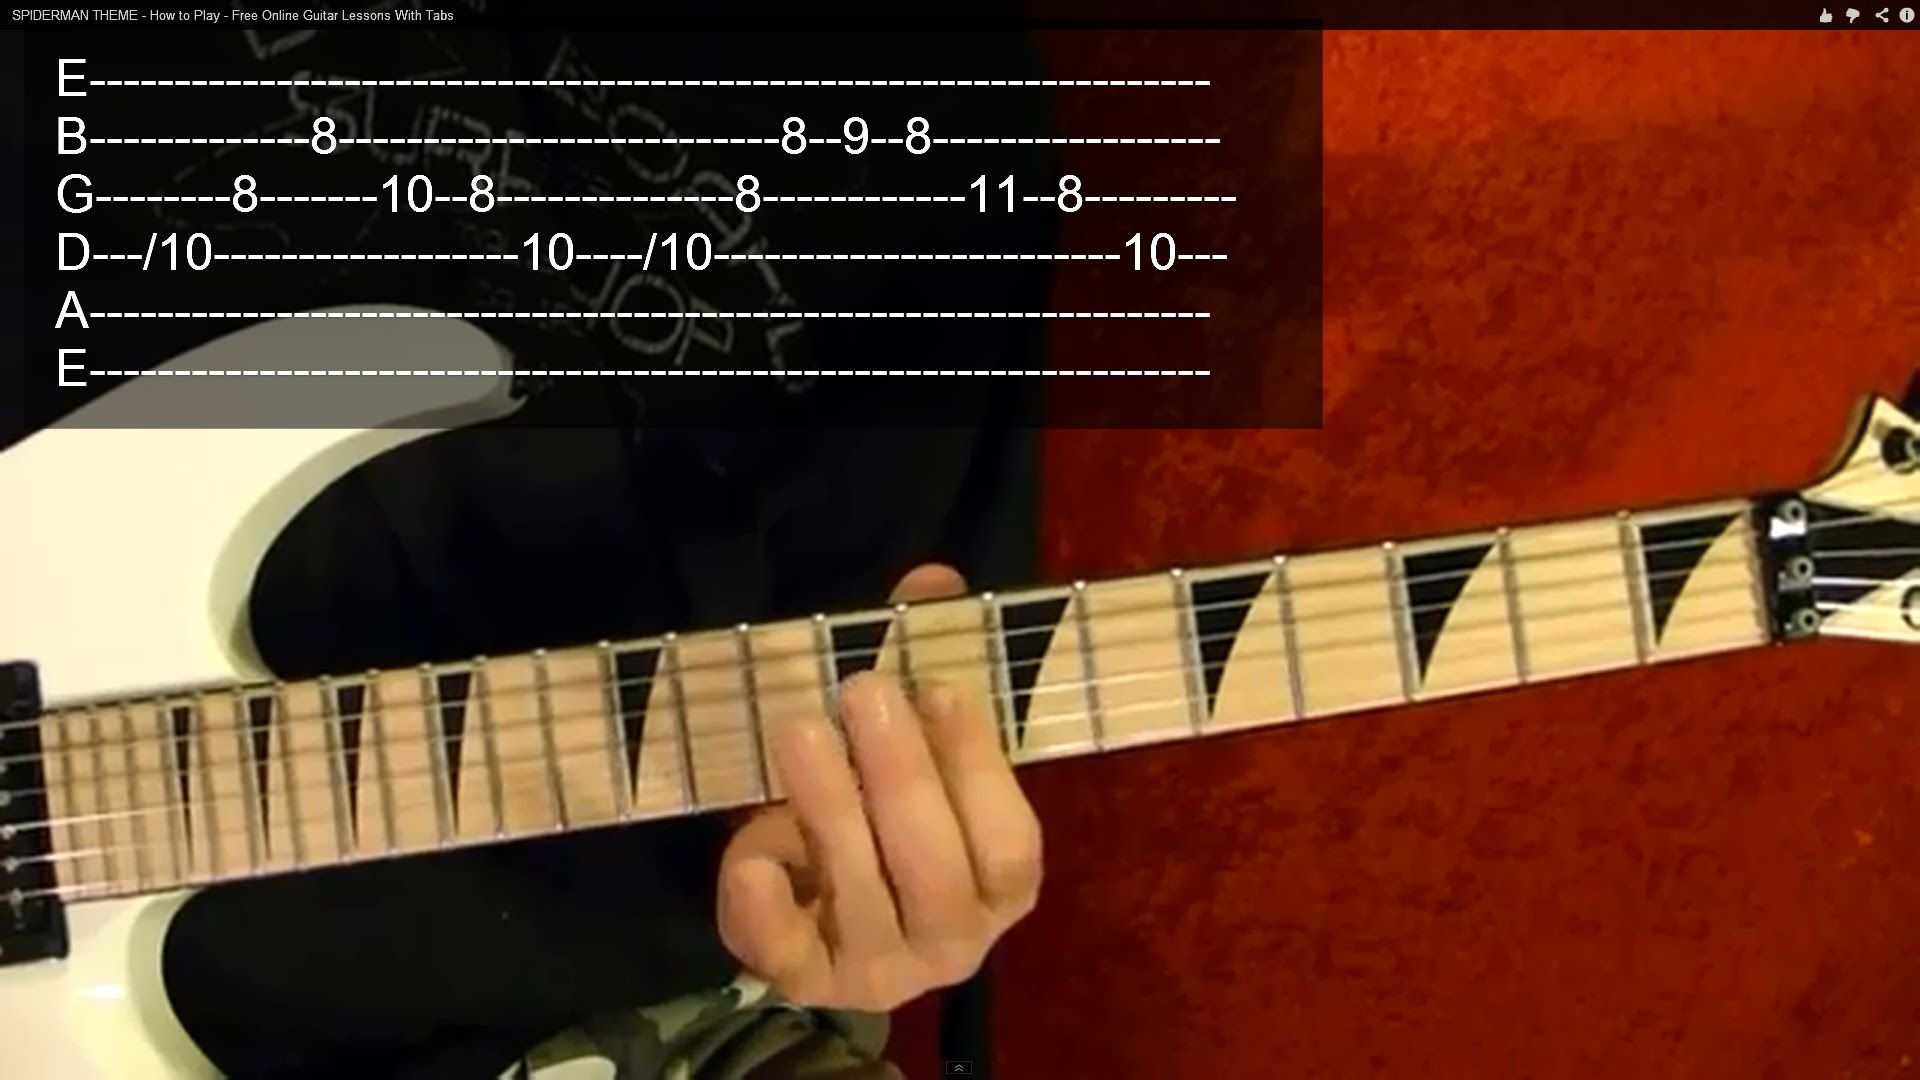 DARTH VADER'S THEME ( Imperial March ) Guitar Lesson